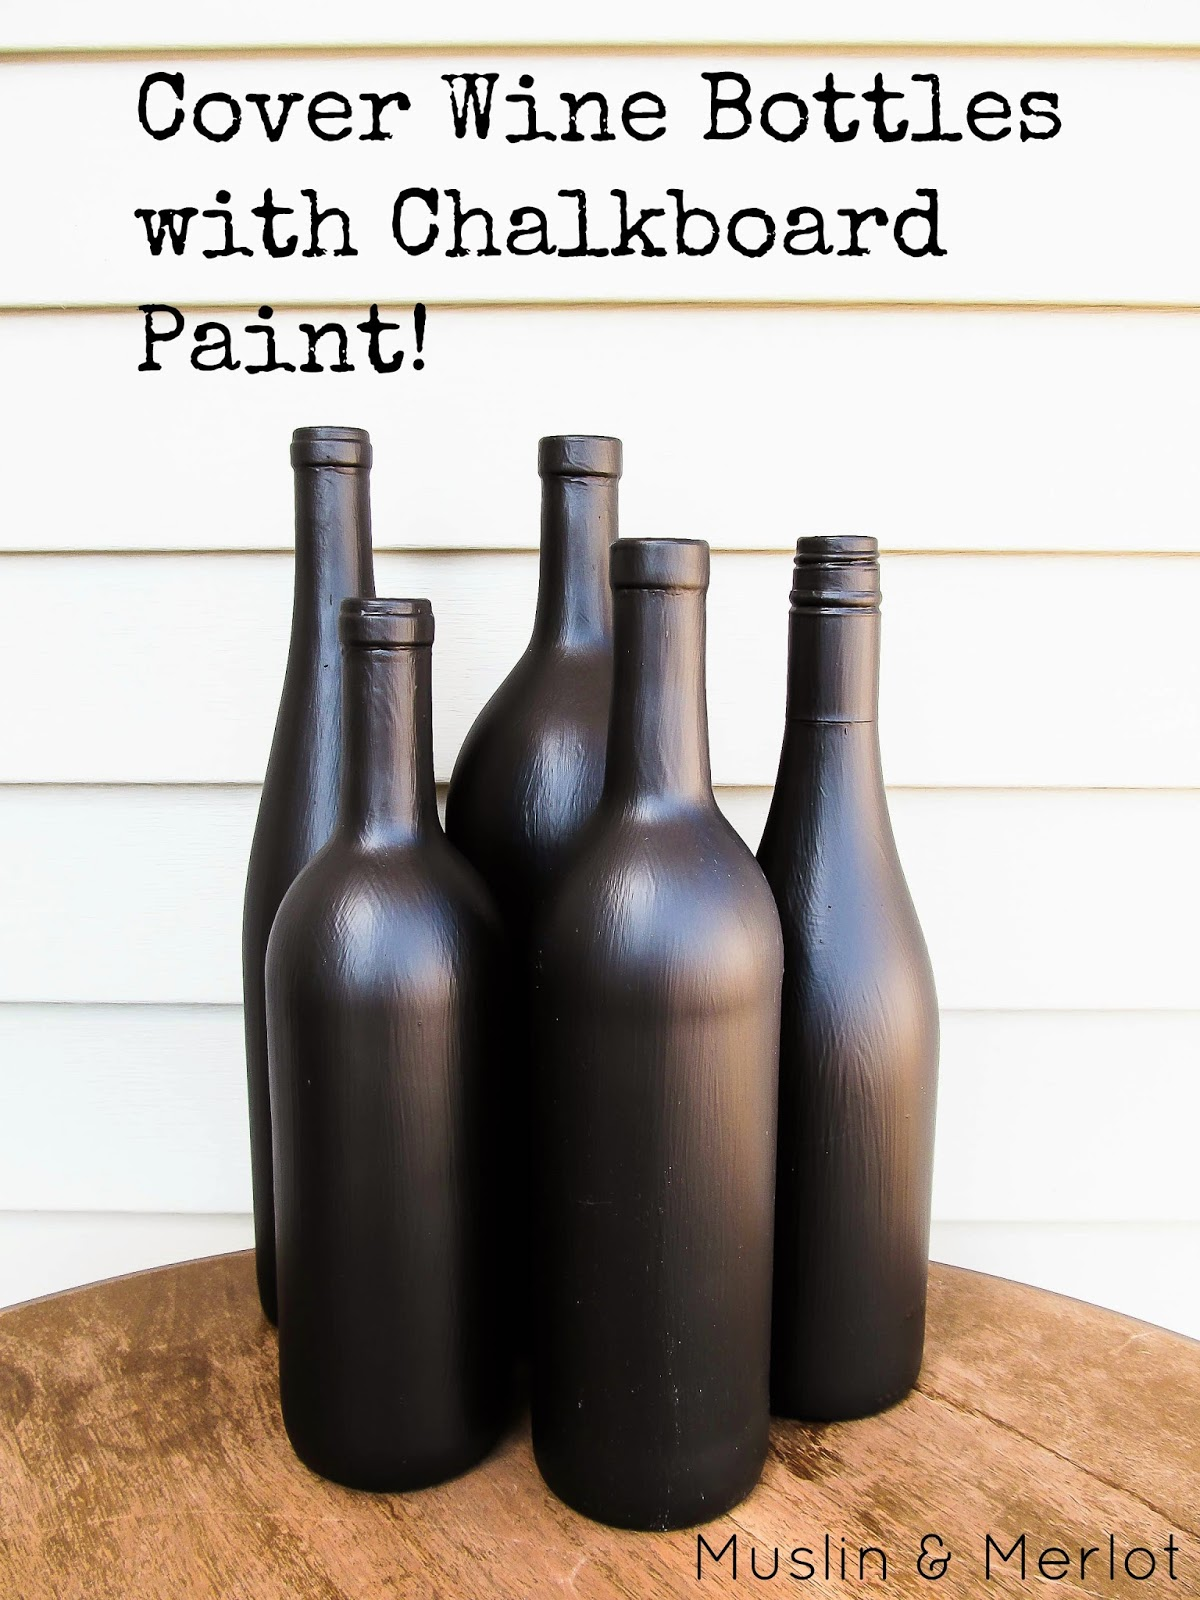 Chalkboard Paint Bottles